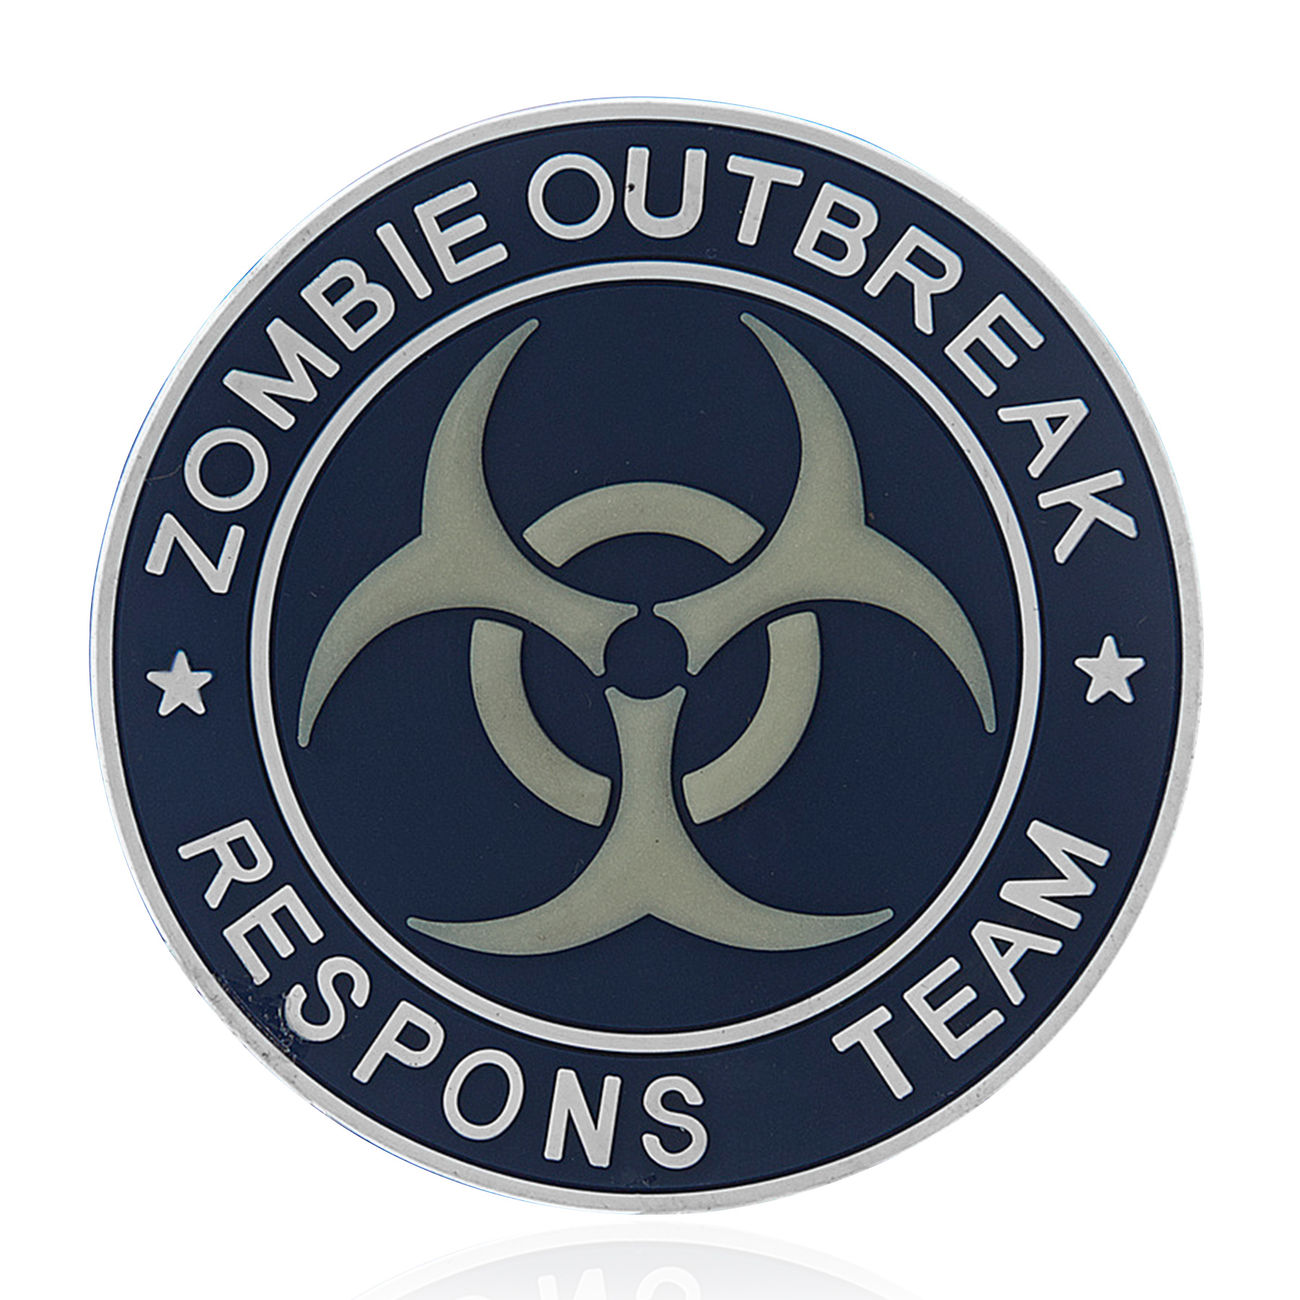 101 INC. 3D Rubber Patch Zombie Outbreak Respons Team blau/weiß 0